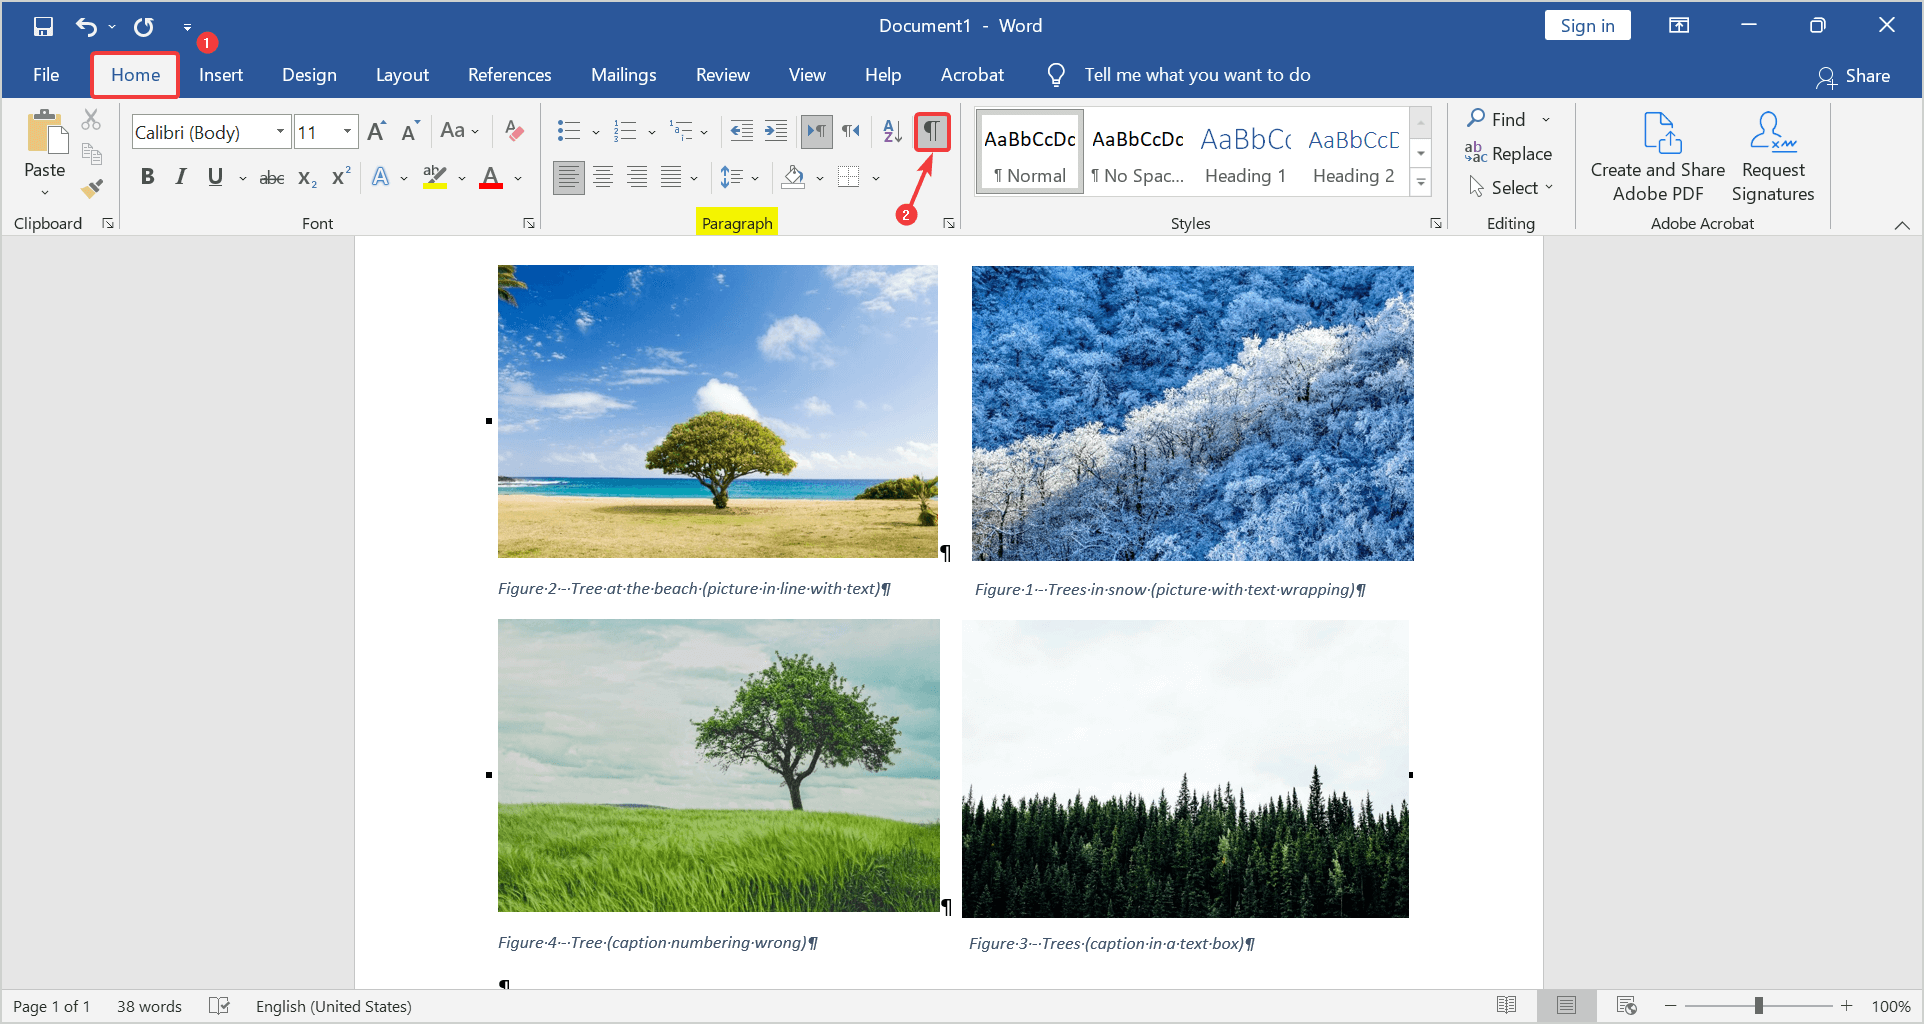 Click on the paragraph button to see the paragraph in the word document